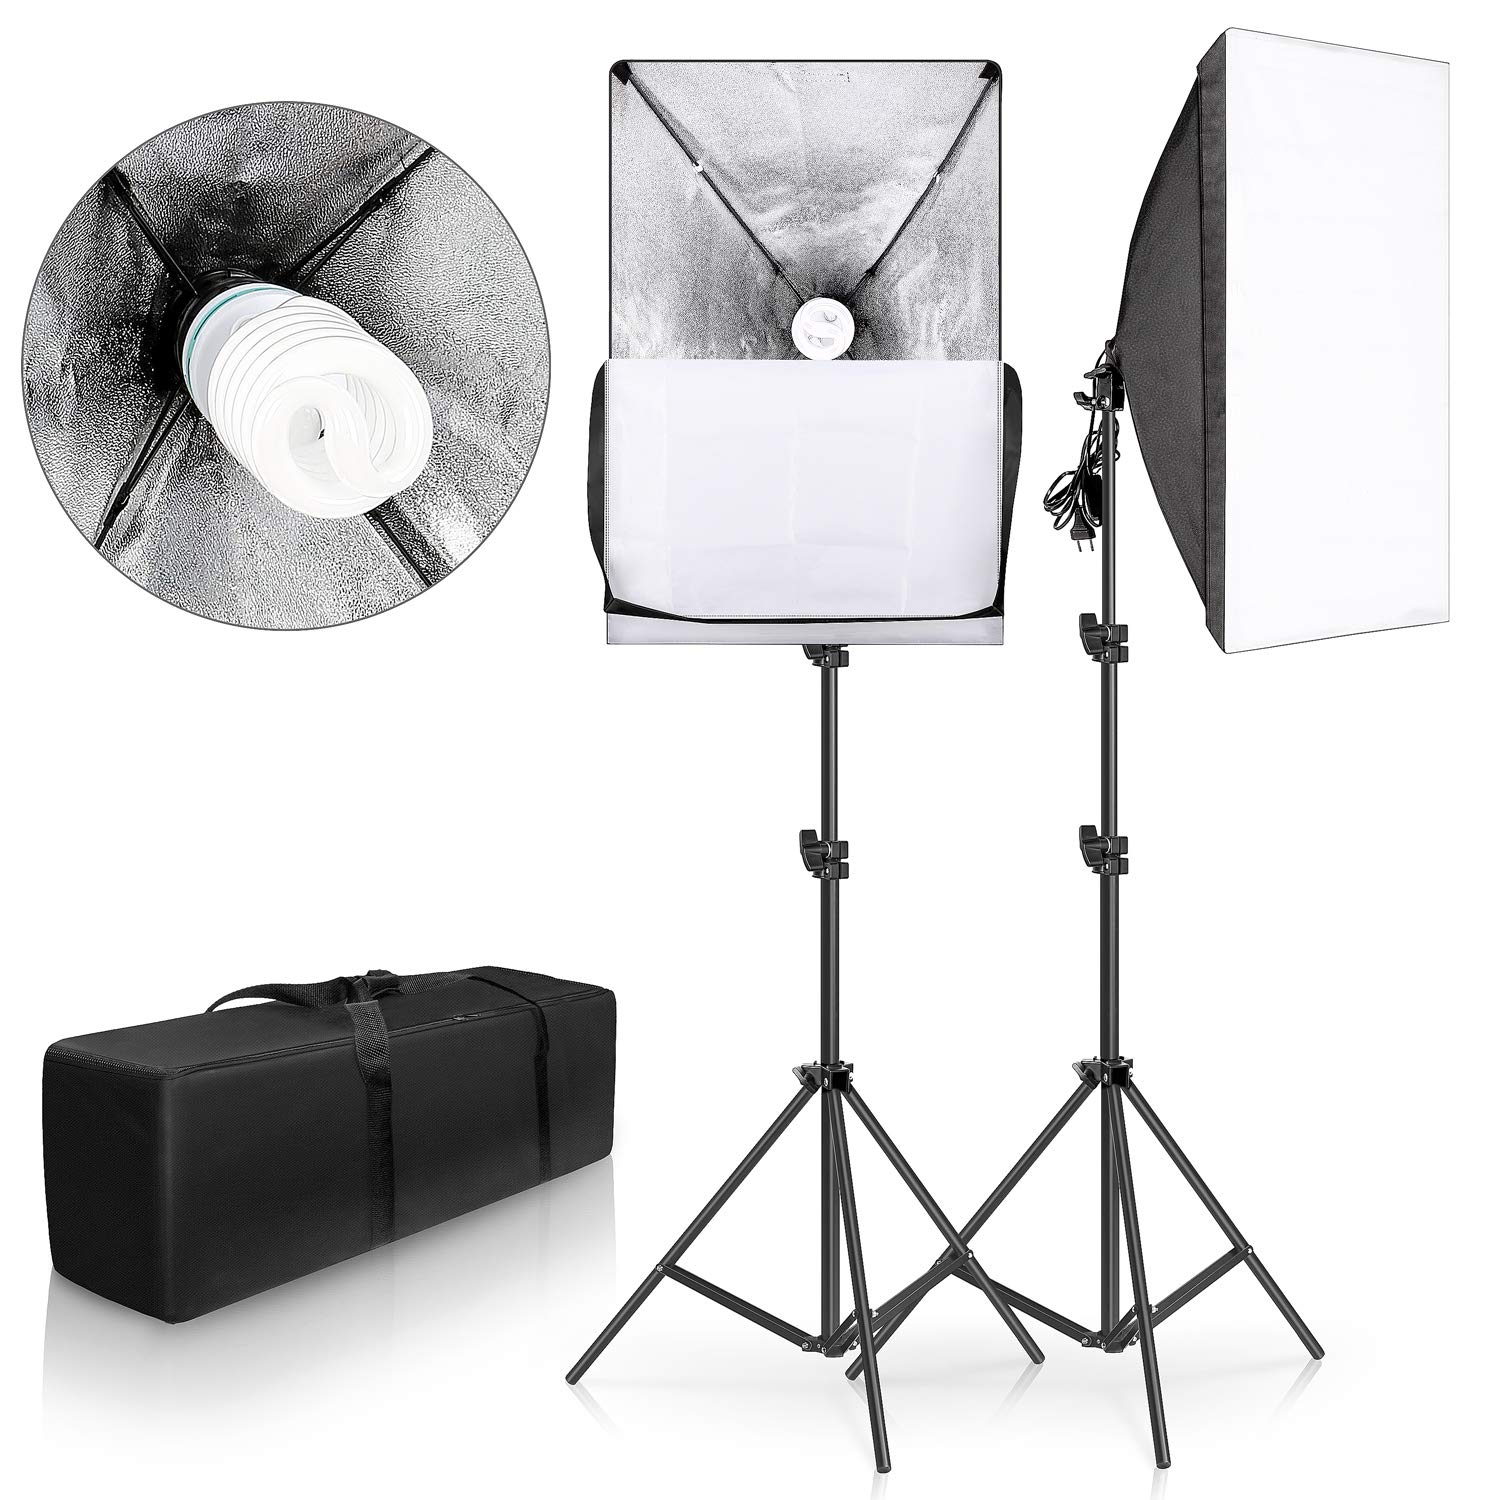 SH 2Set 20''X28'' Softbox Photography Lighting Kit 135W Continuous Lighting System Photo Studio Equipment Photo Model Portraits Shooting Box E27 Video Lighting Bulb by SH